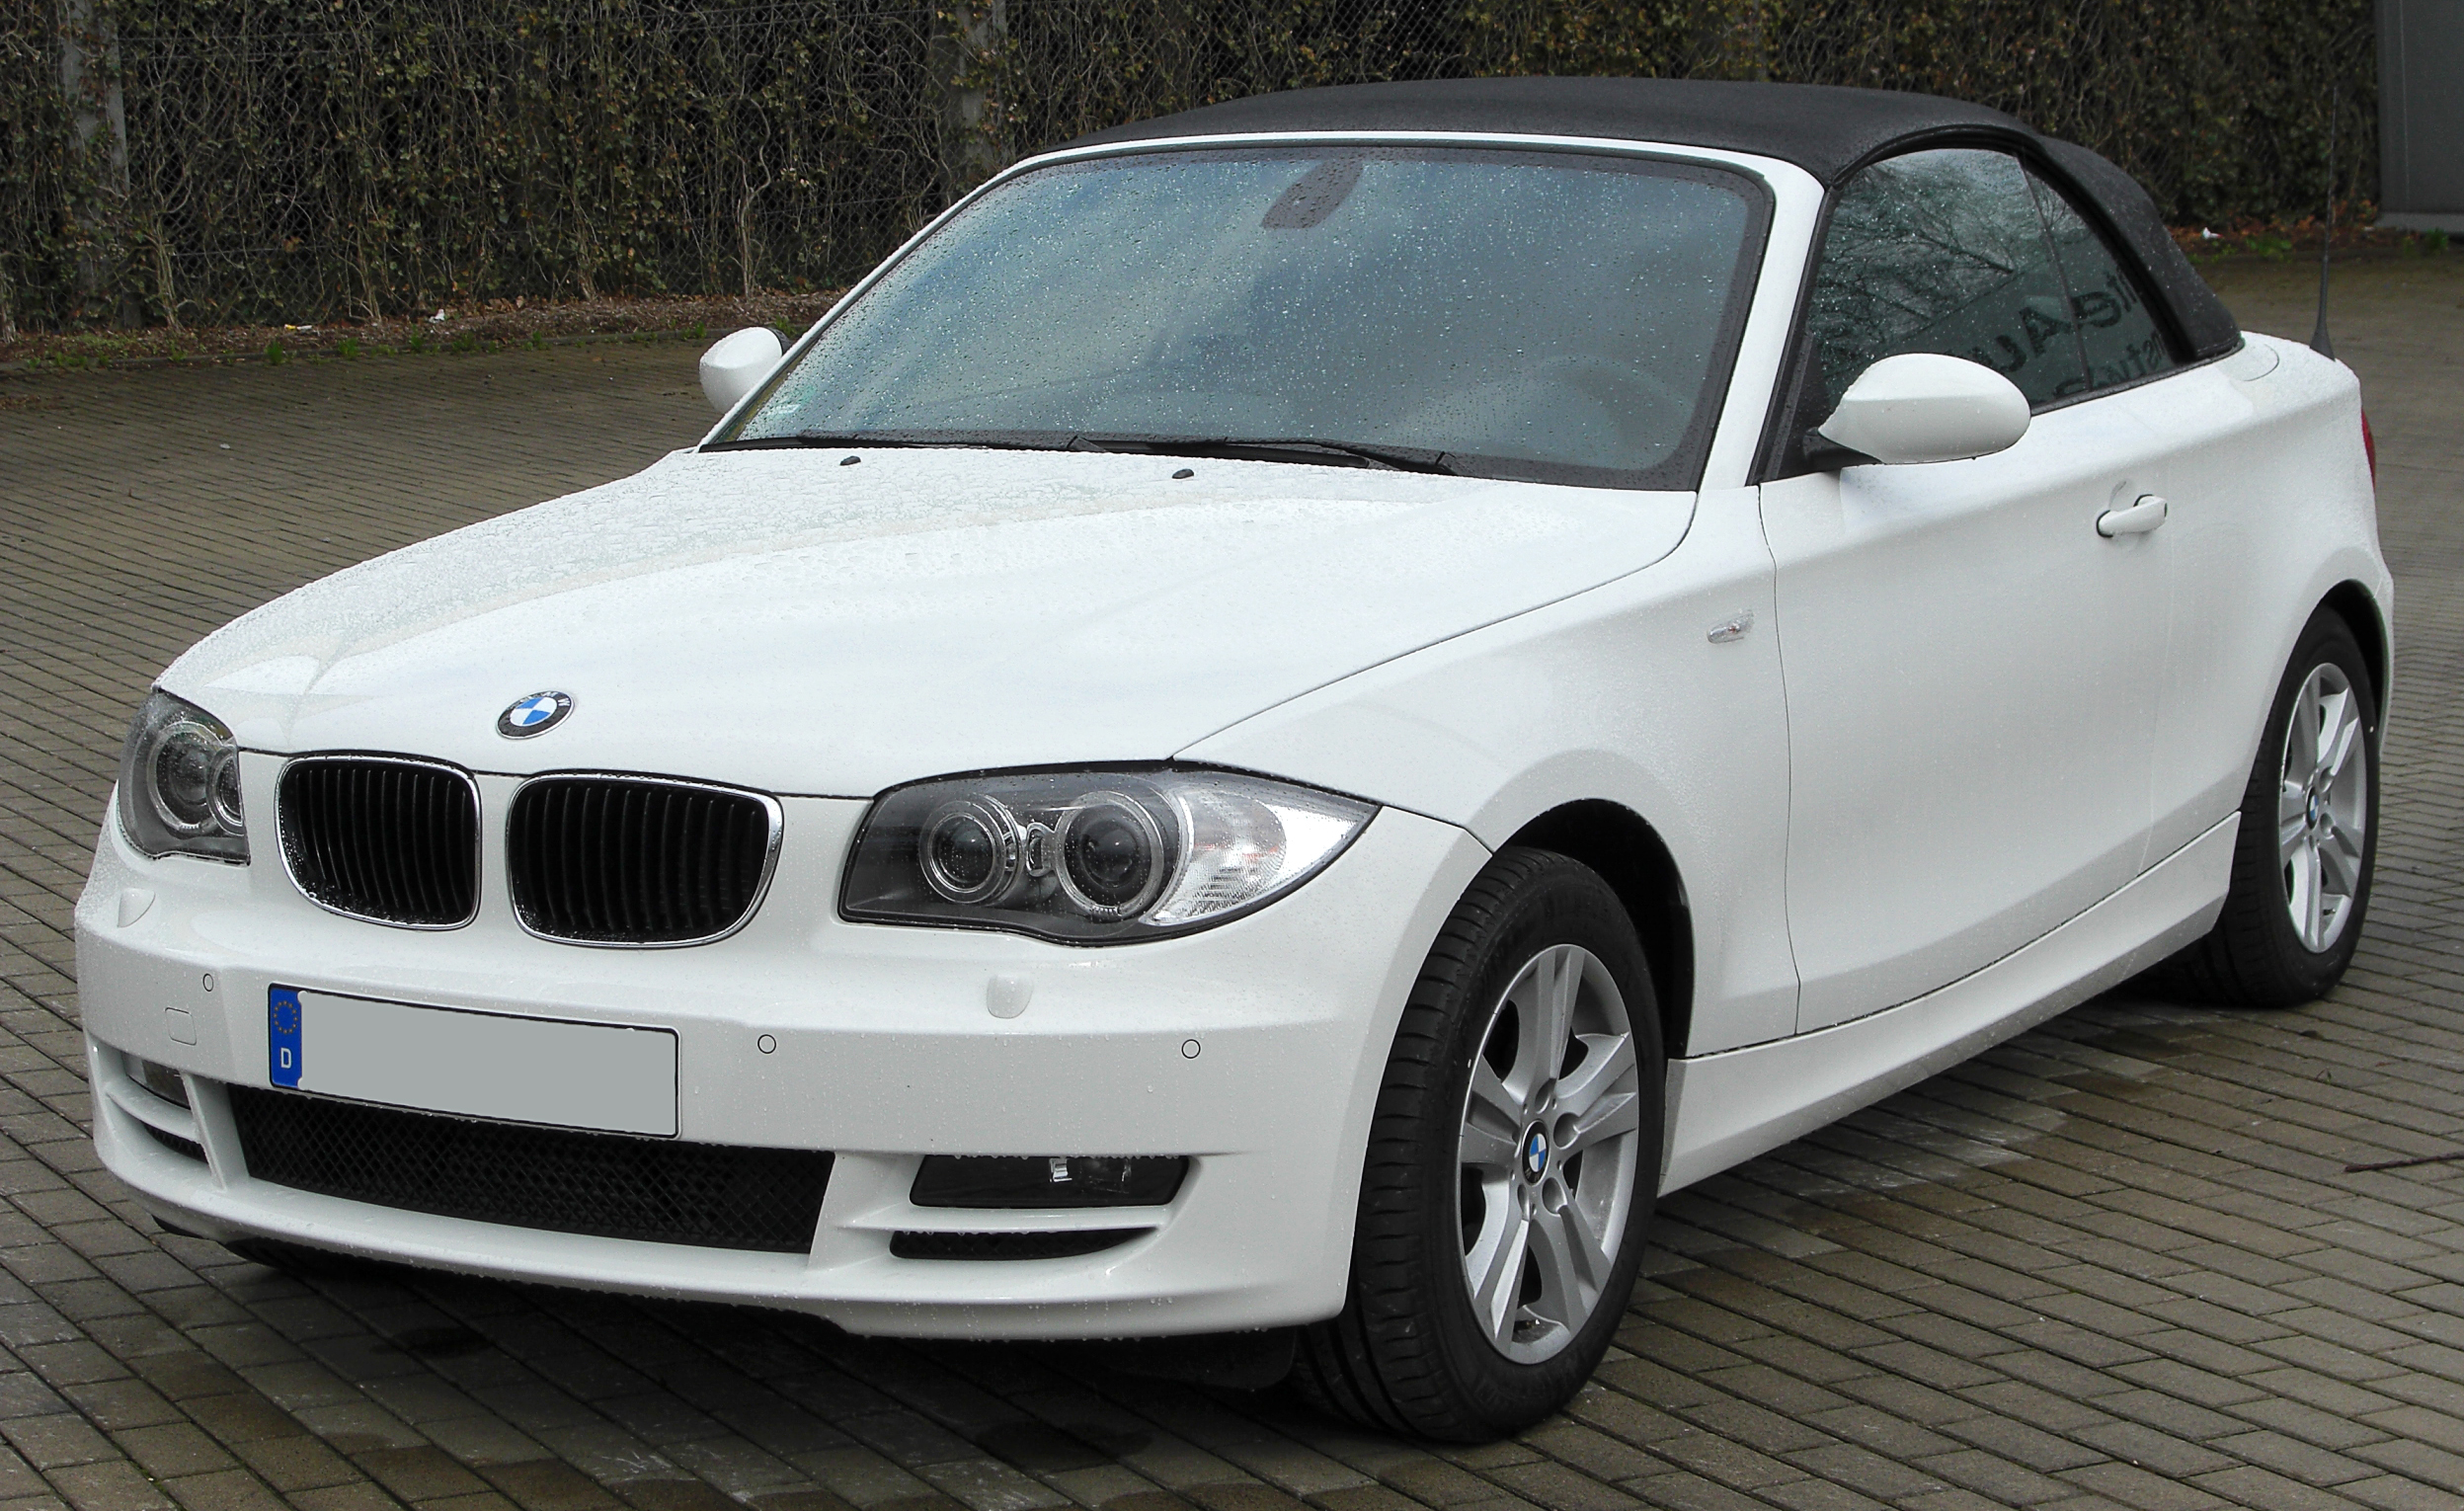 file bmw 118d cabriolet front wikimedia commons